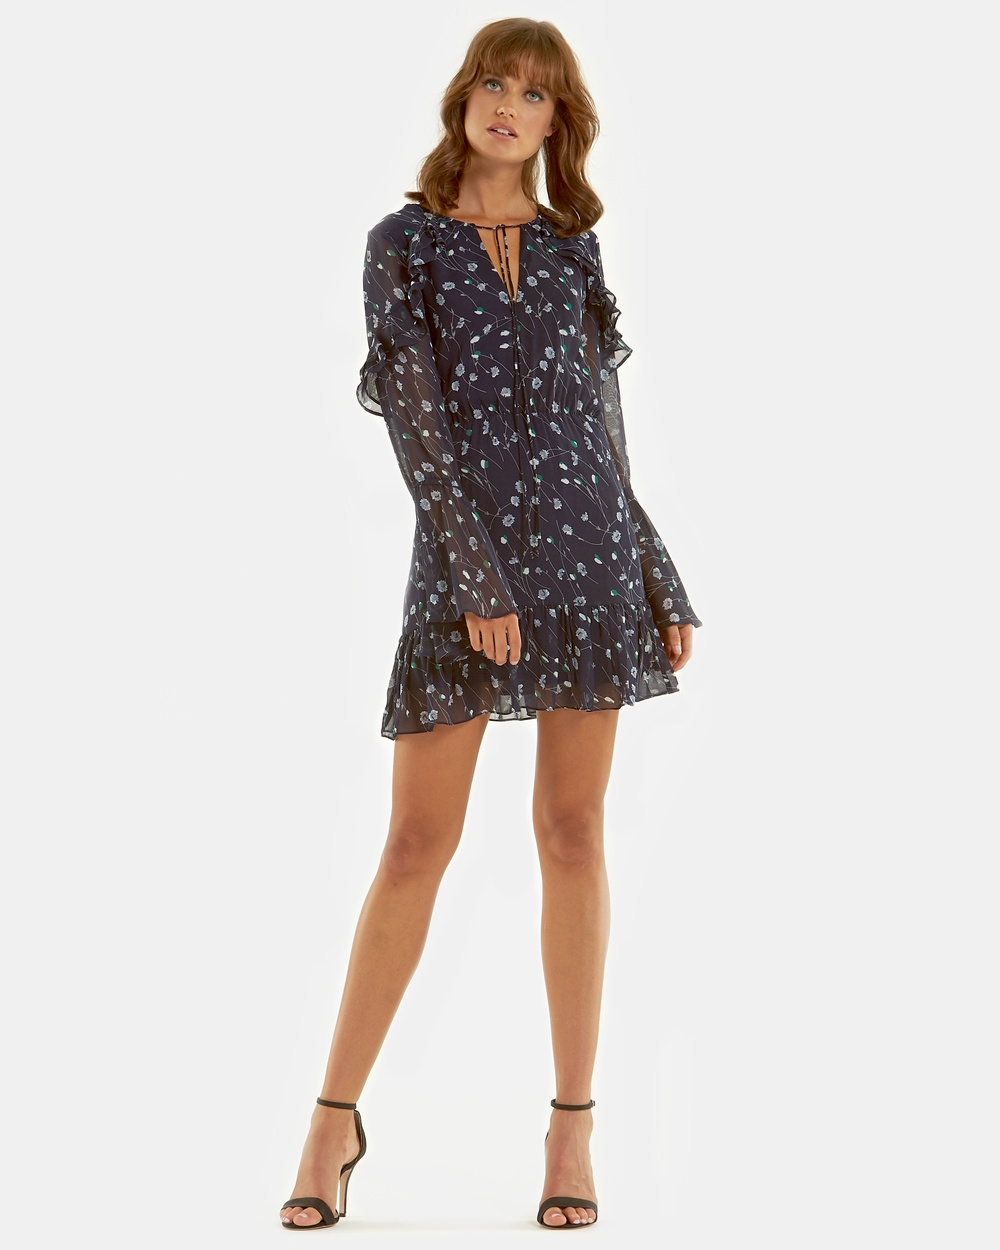 Amelius Addison Print Dress Printed Dresses Navy Print Addison Print Dress